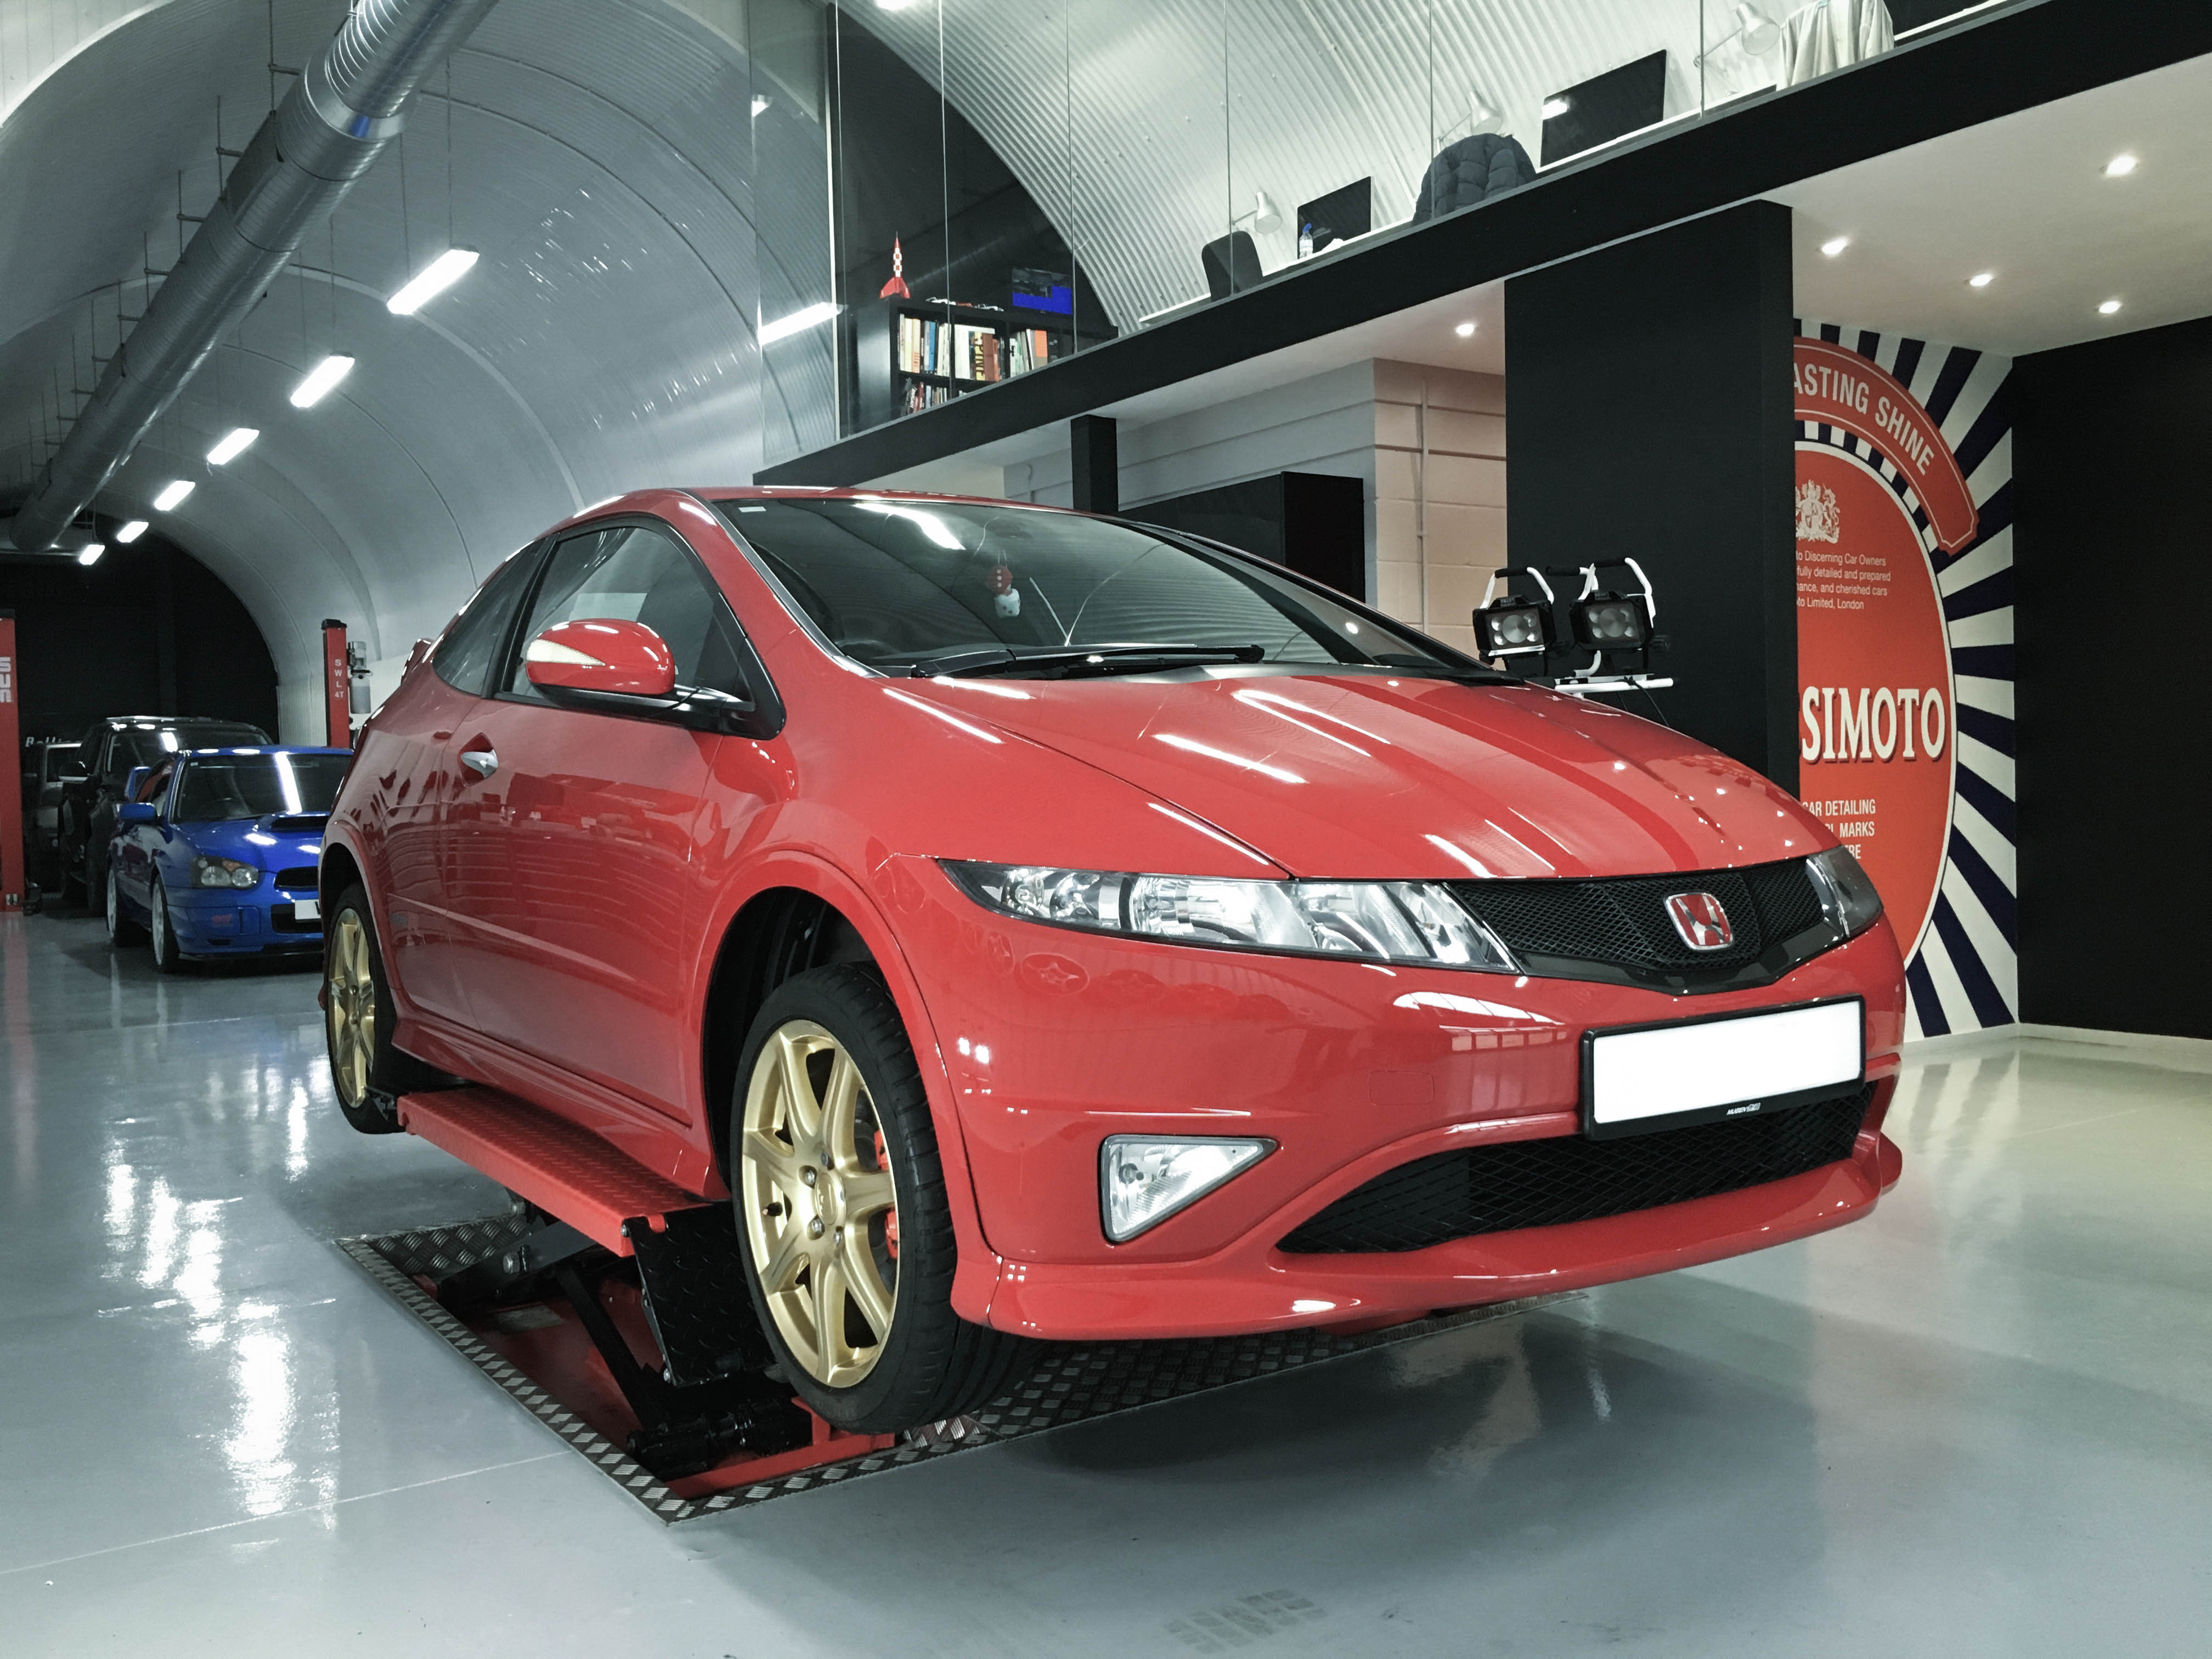 Honda Civic TypeR – On lift